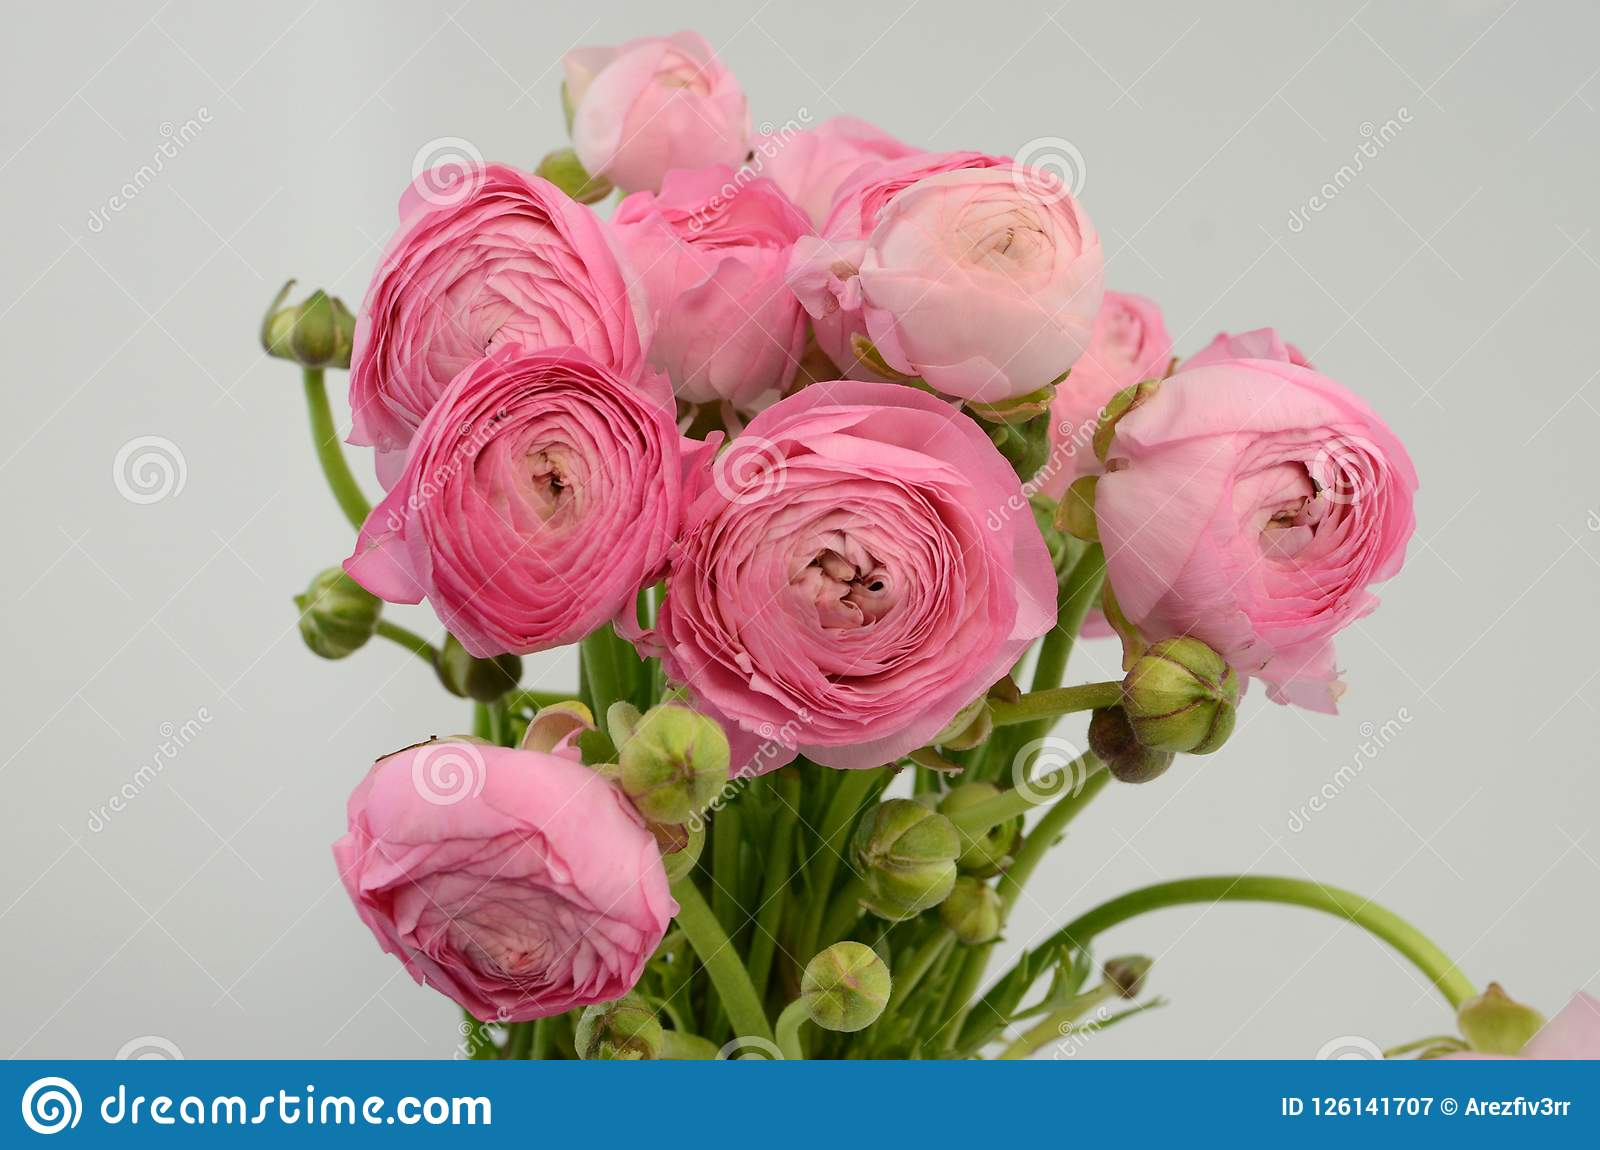 Persian buttercup. Bunch pale pink ranunculus flowers light background